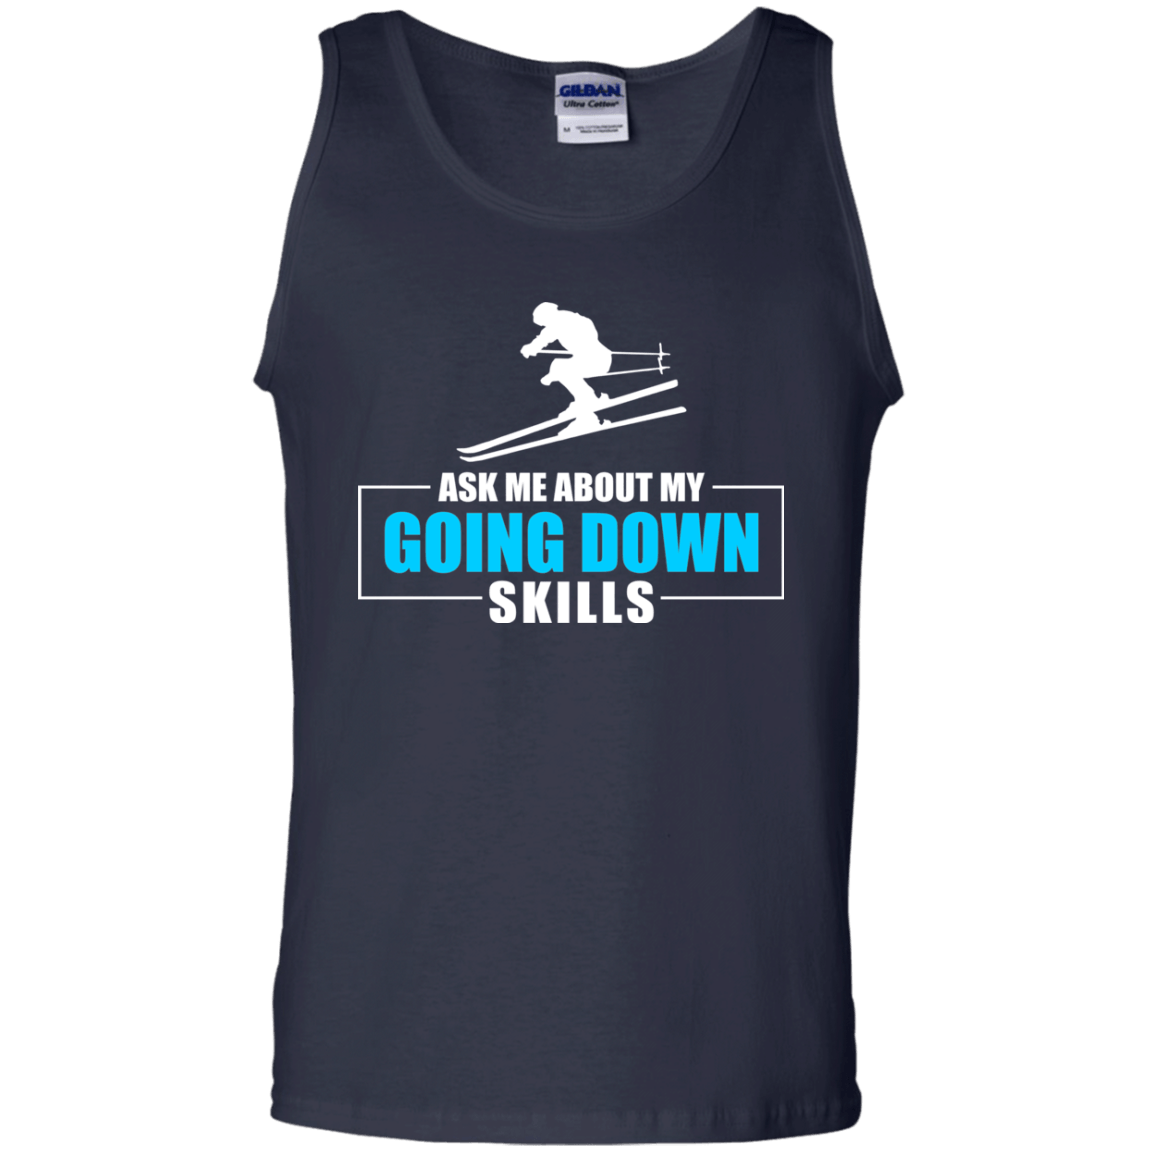 Ask Me About My Going Down Skills - Ski Tank Tops - Powderaddicts